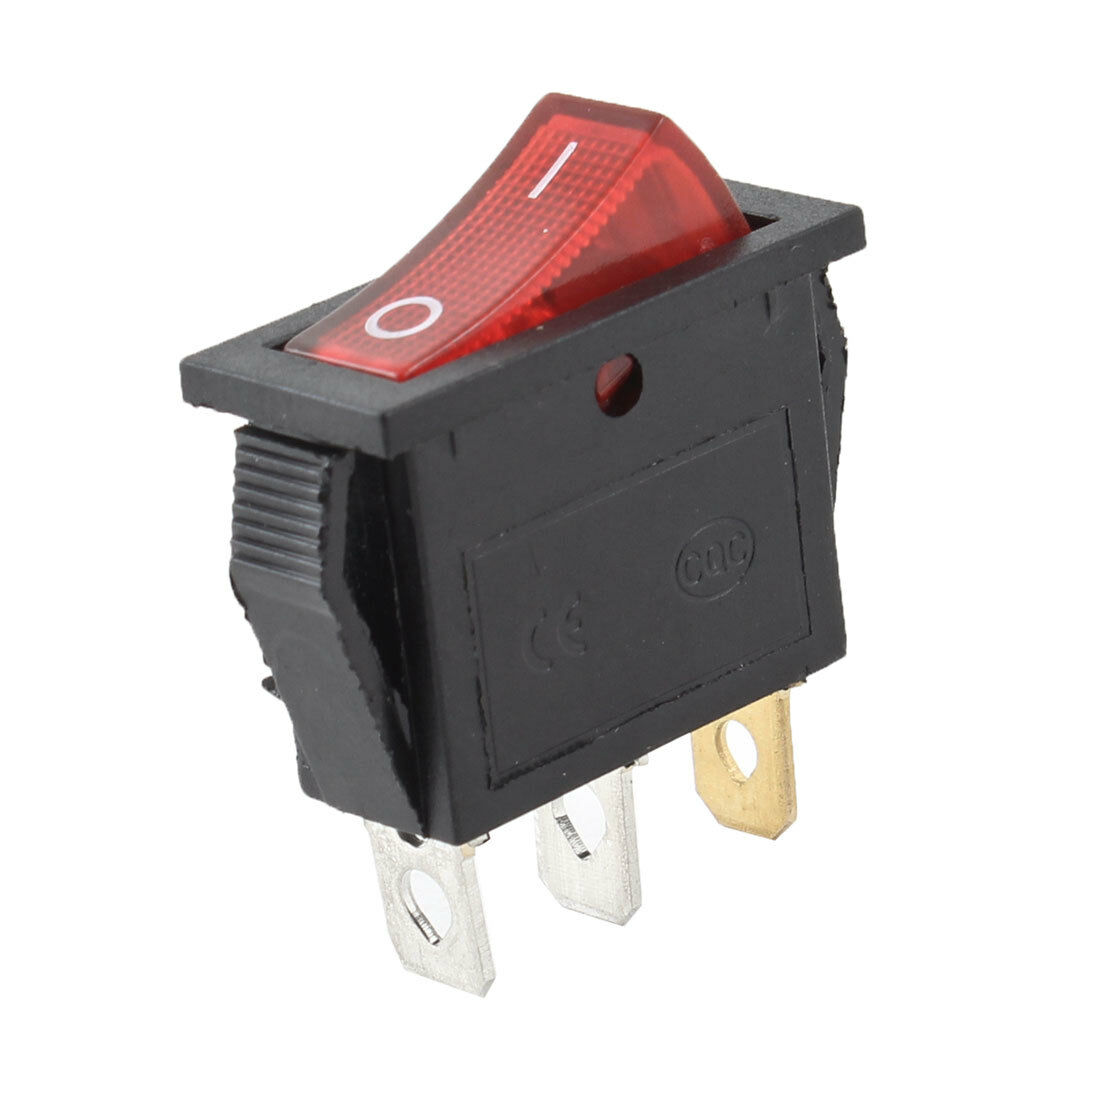 Spst 3 Pole Red Button On Off Rectangle Rocker Switch Ac 30a 125v Leviton White Decora Triple Wall Light Triplex 15a 1755 1 Of 1free Shipping